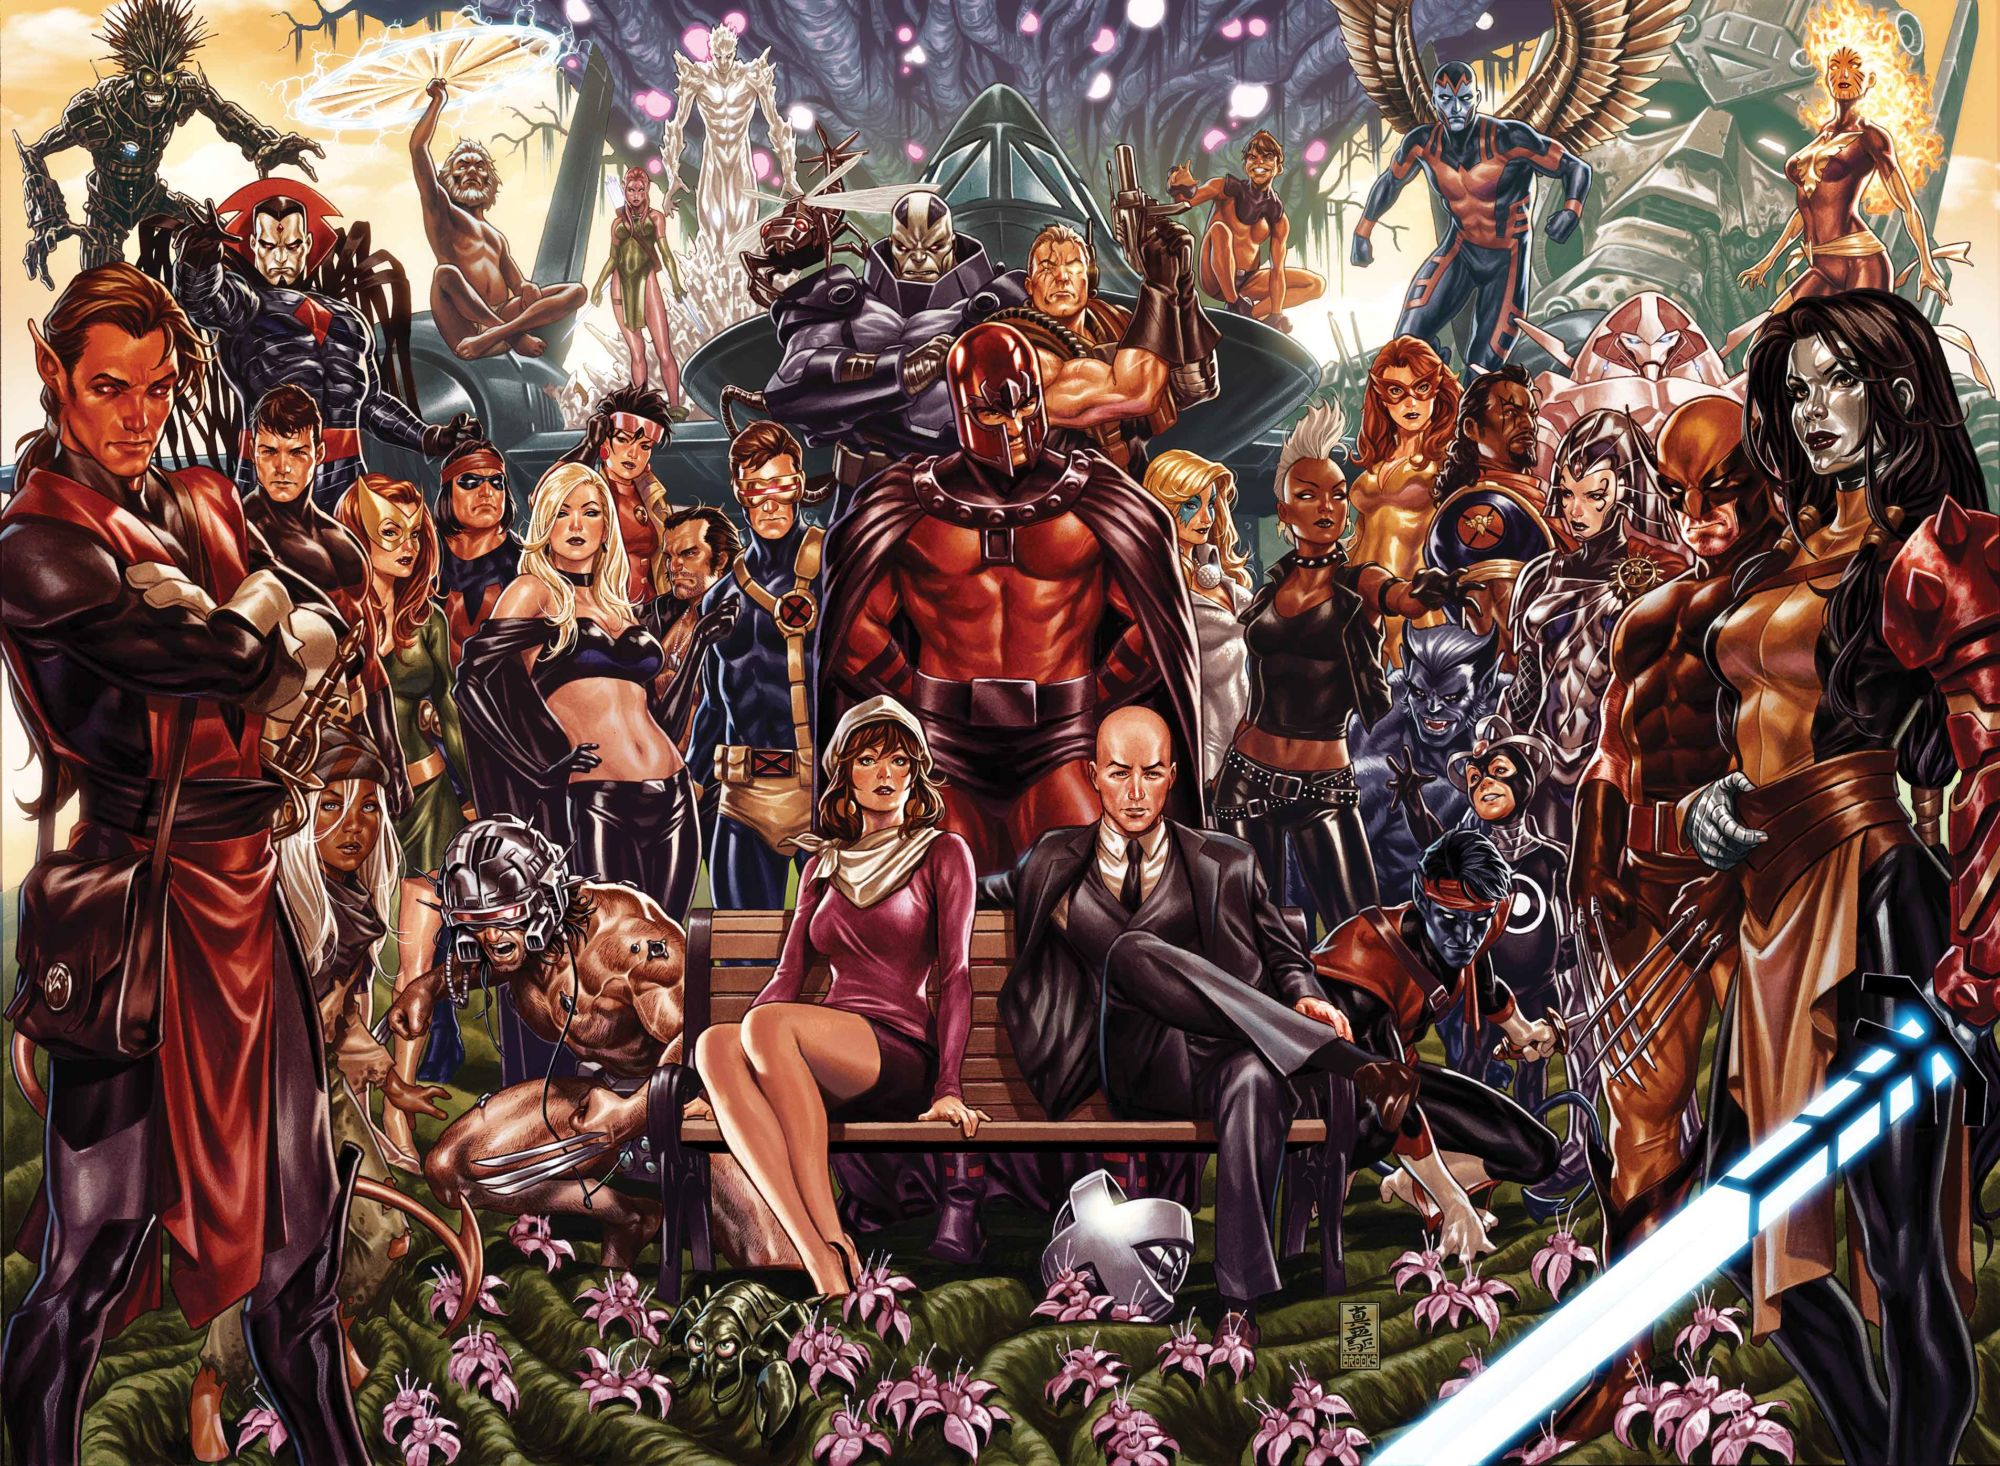 Marvel Offers 13 Retailer Exclusive Variant Covers in July - House and Powers of X, Death's Head, Loki, Venom and More